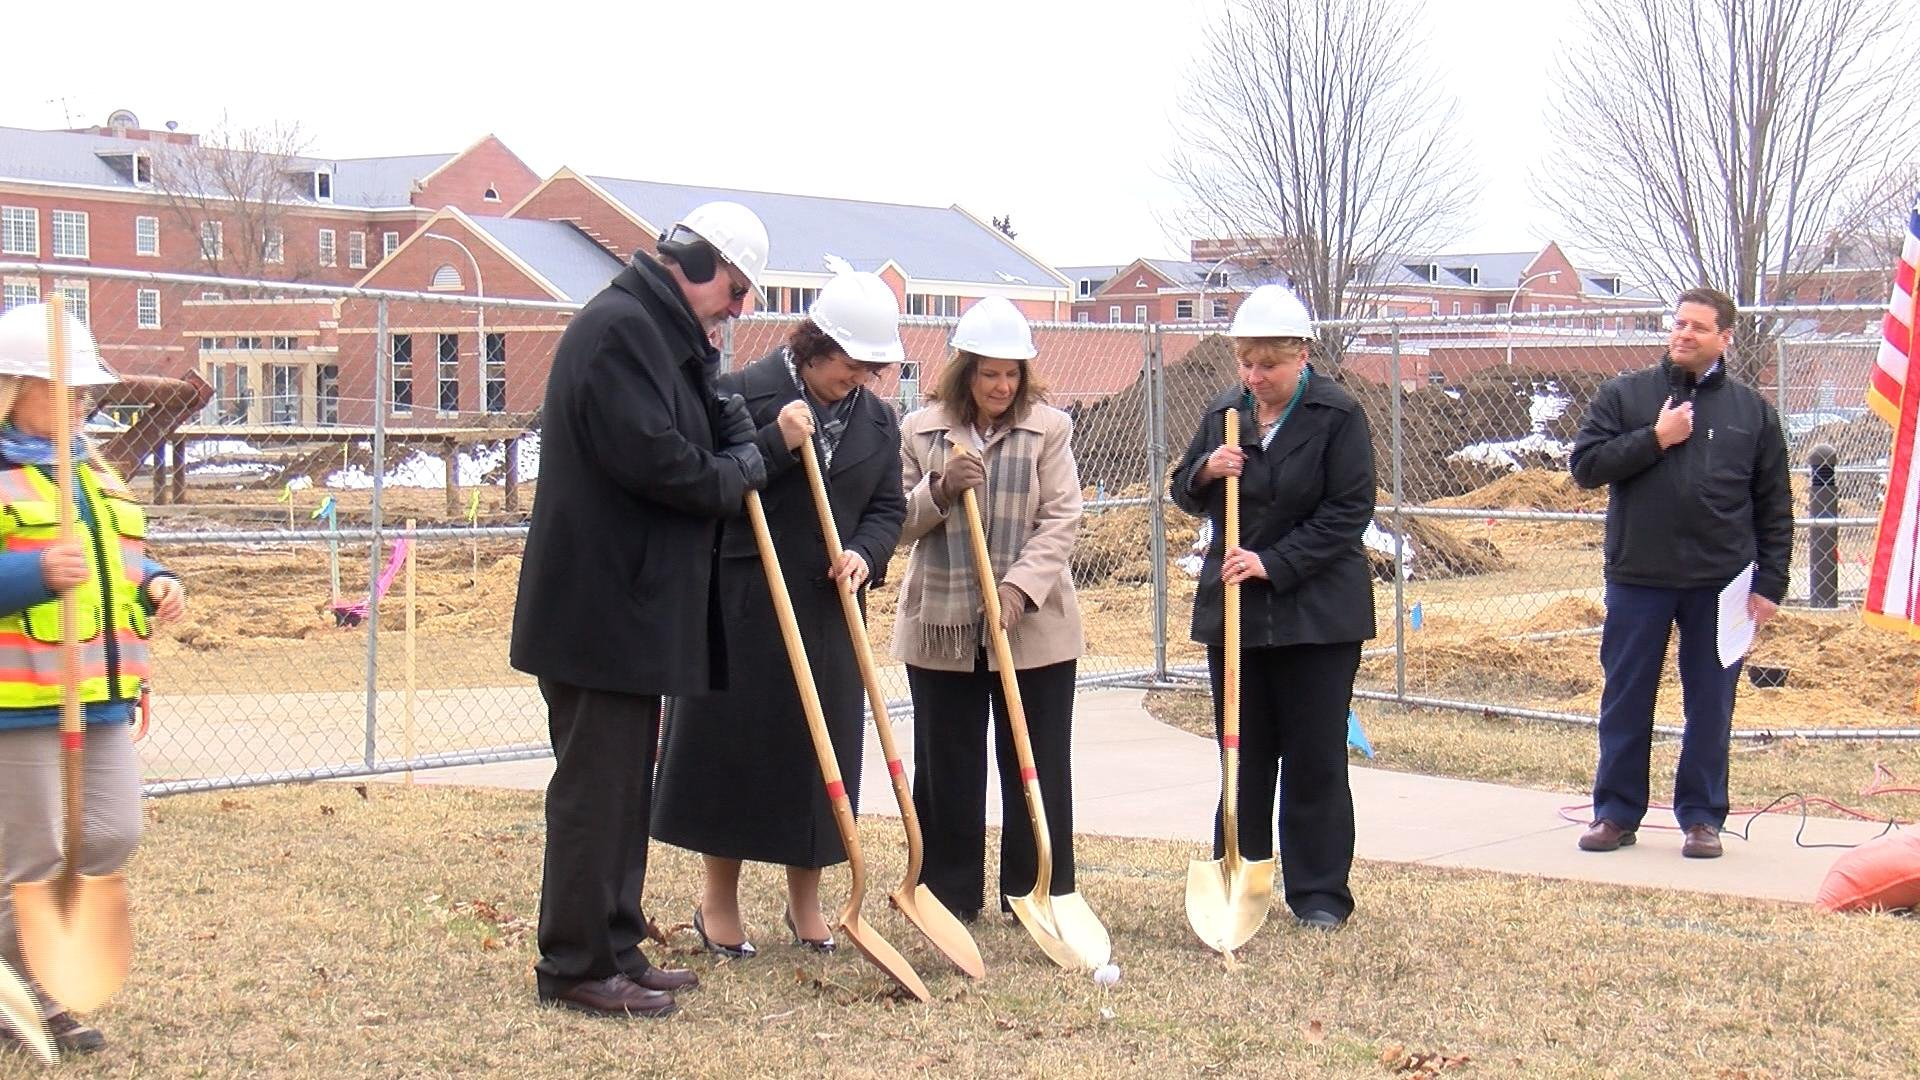 Officials including the Tomah VA Medical Center Director Victoria Brahm dig shovels into the ground for the groundbreaking ceremony.